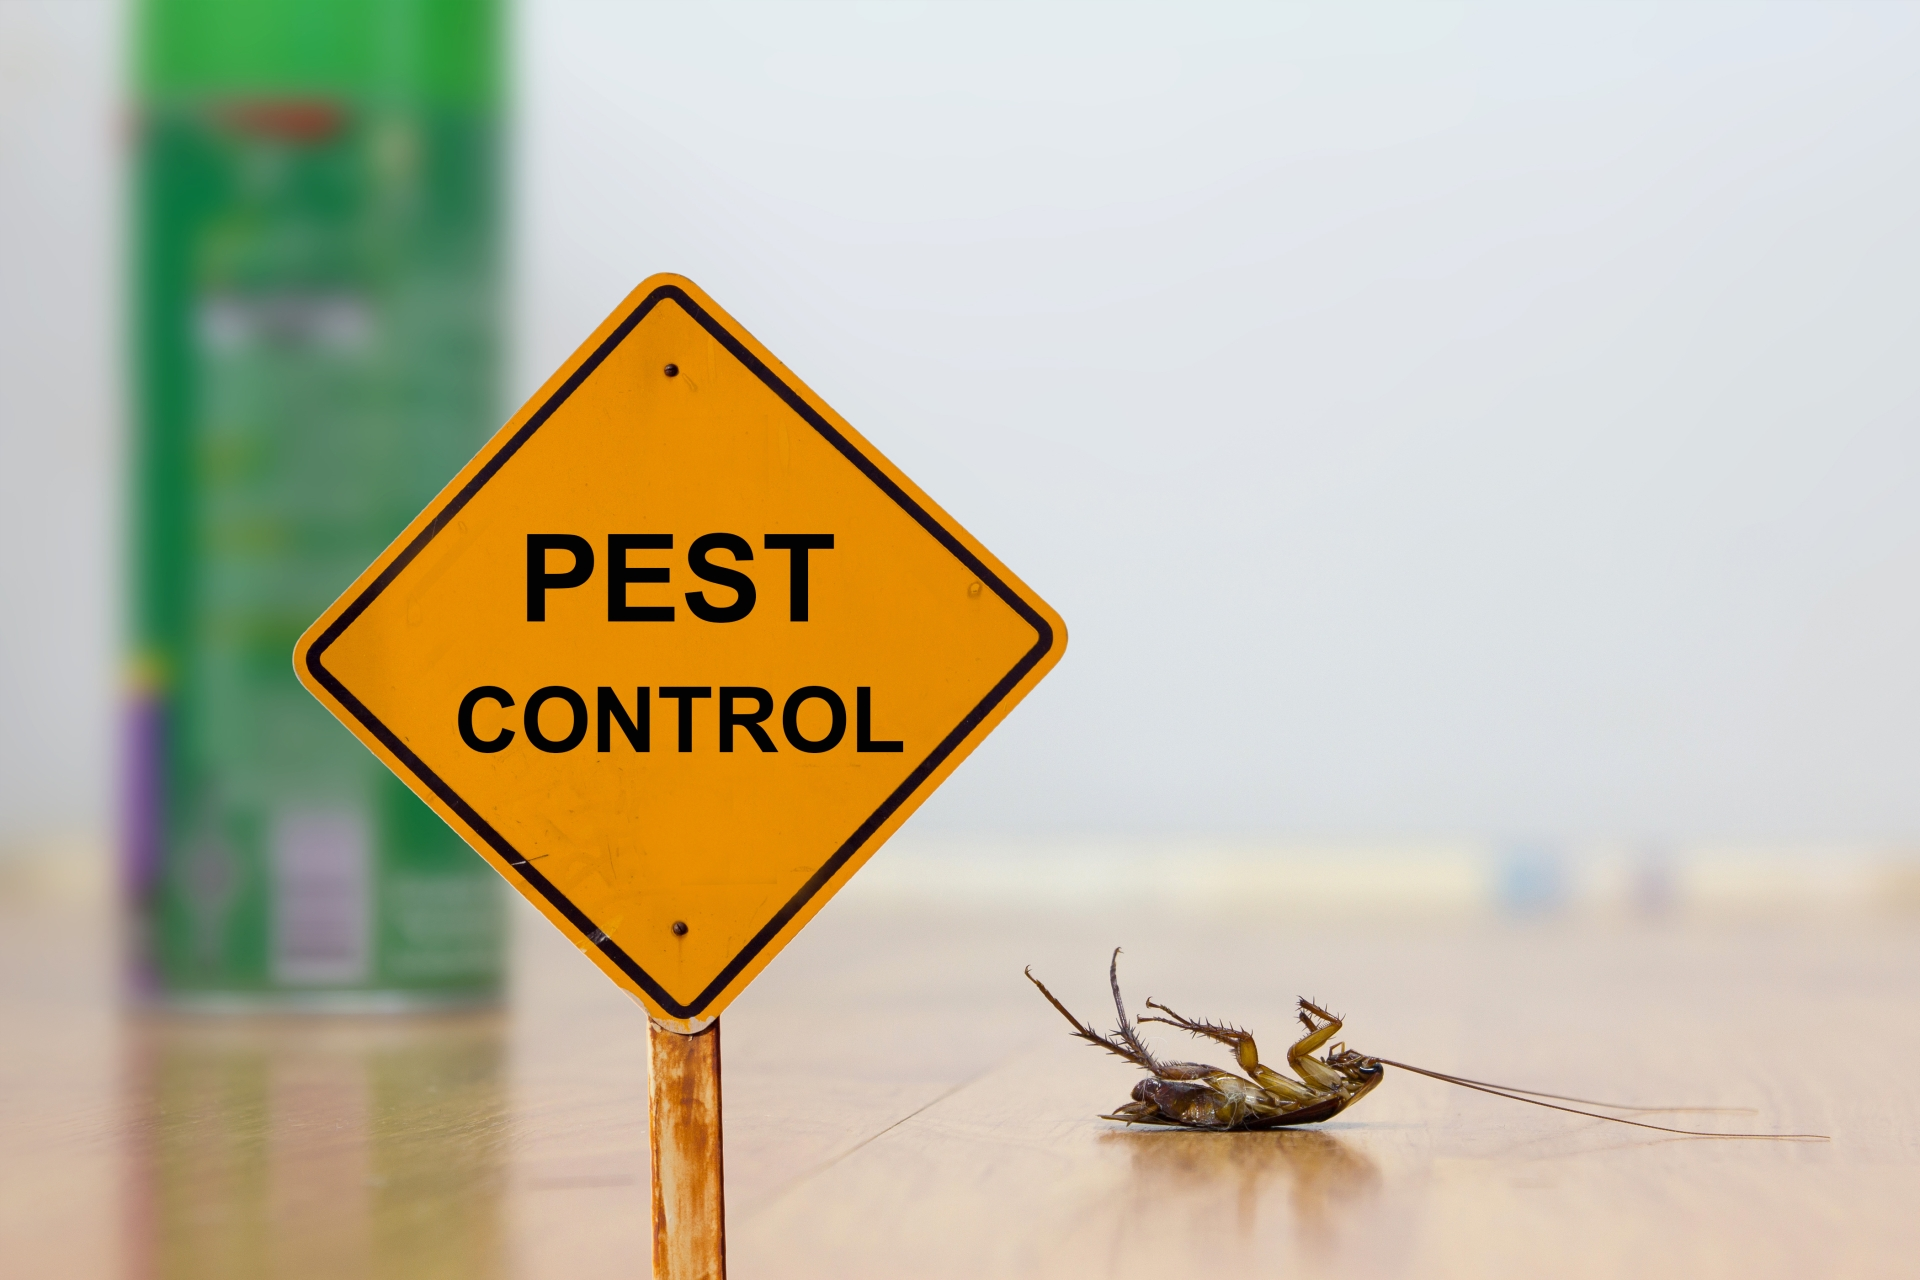 24 Hour Pest Control, Pest Control in Balham, SW12. Call Now 020 8166 9746